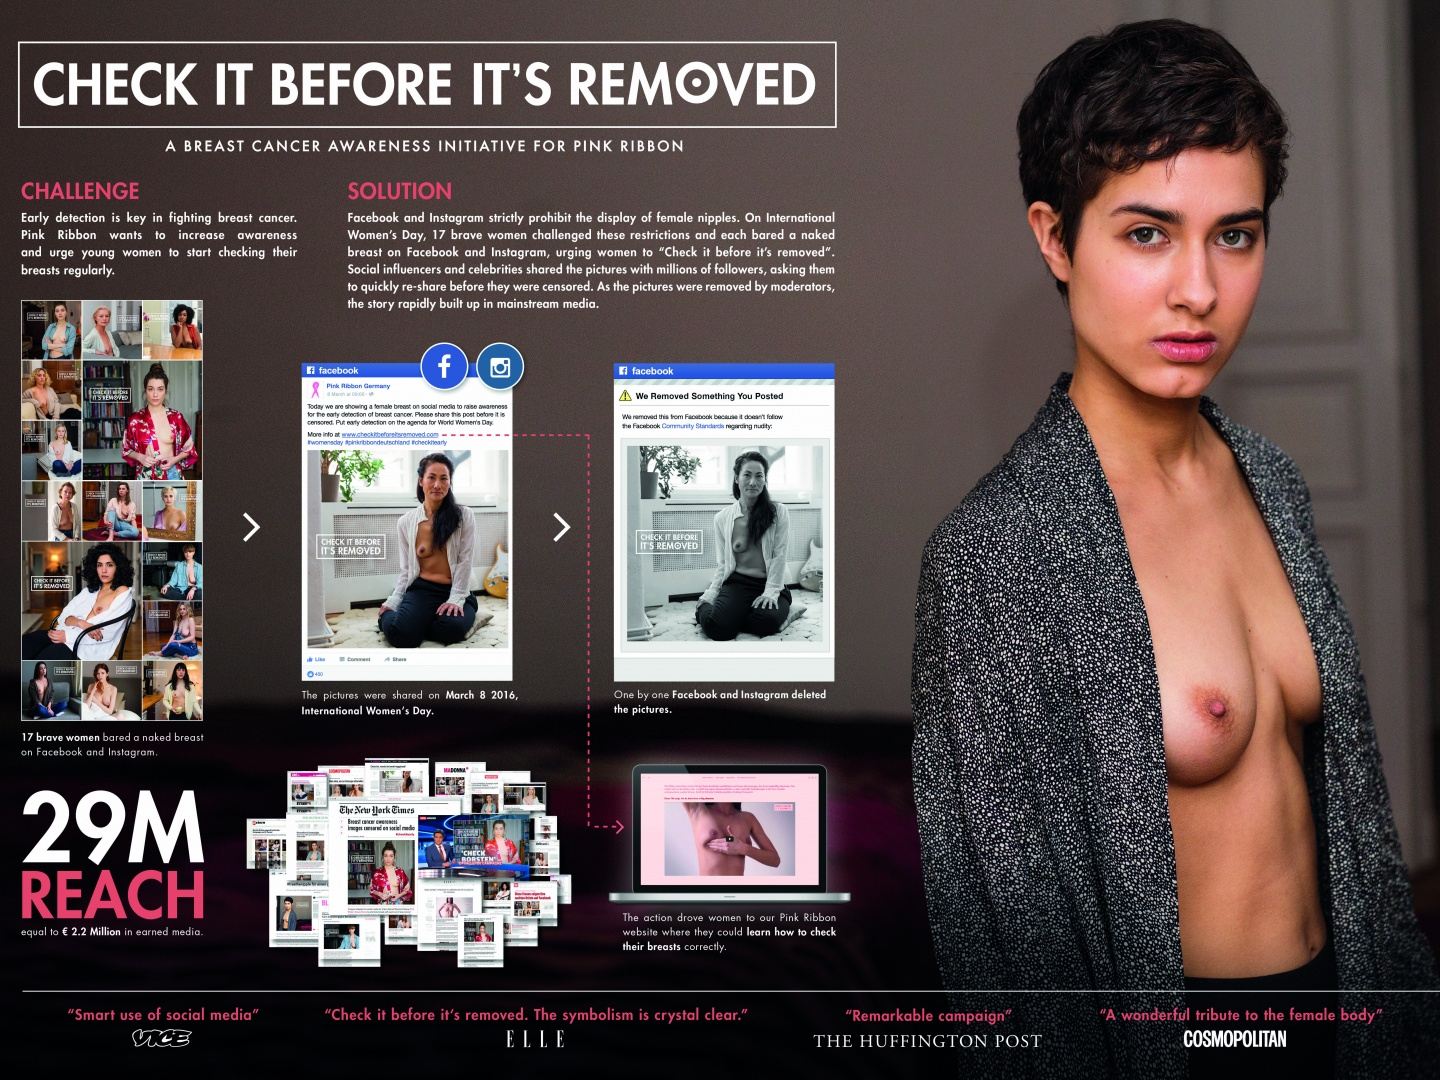 Check it before it's removed: Naked breasts on Facebook against breast cancer. Thumbnail